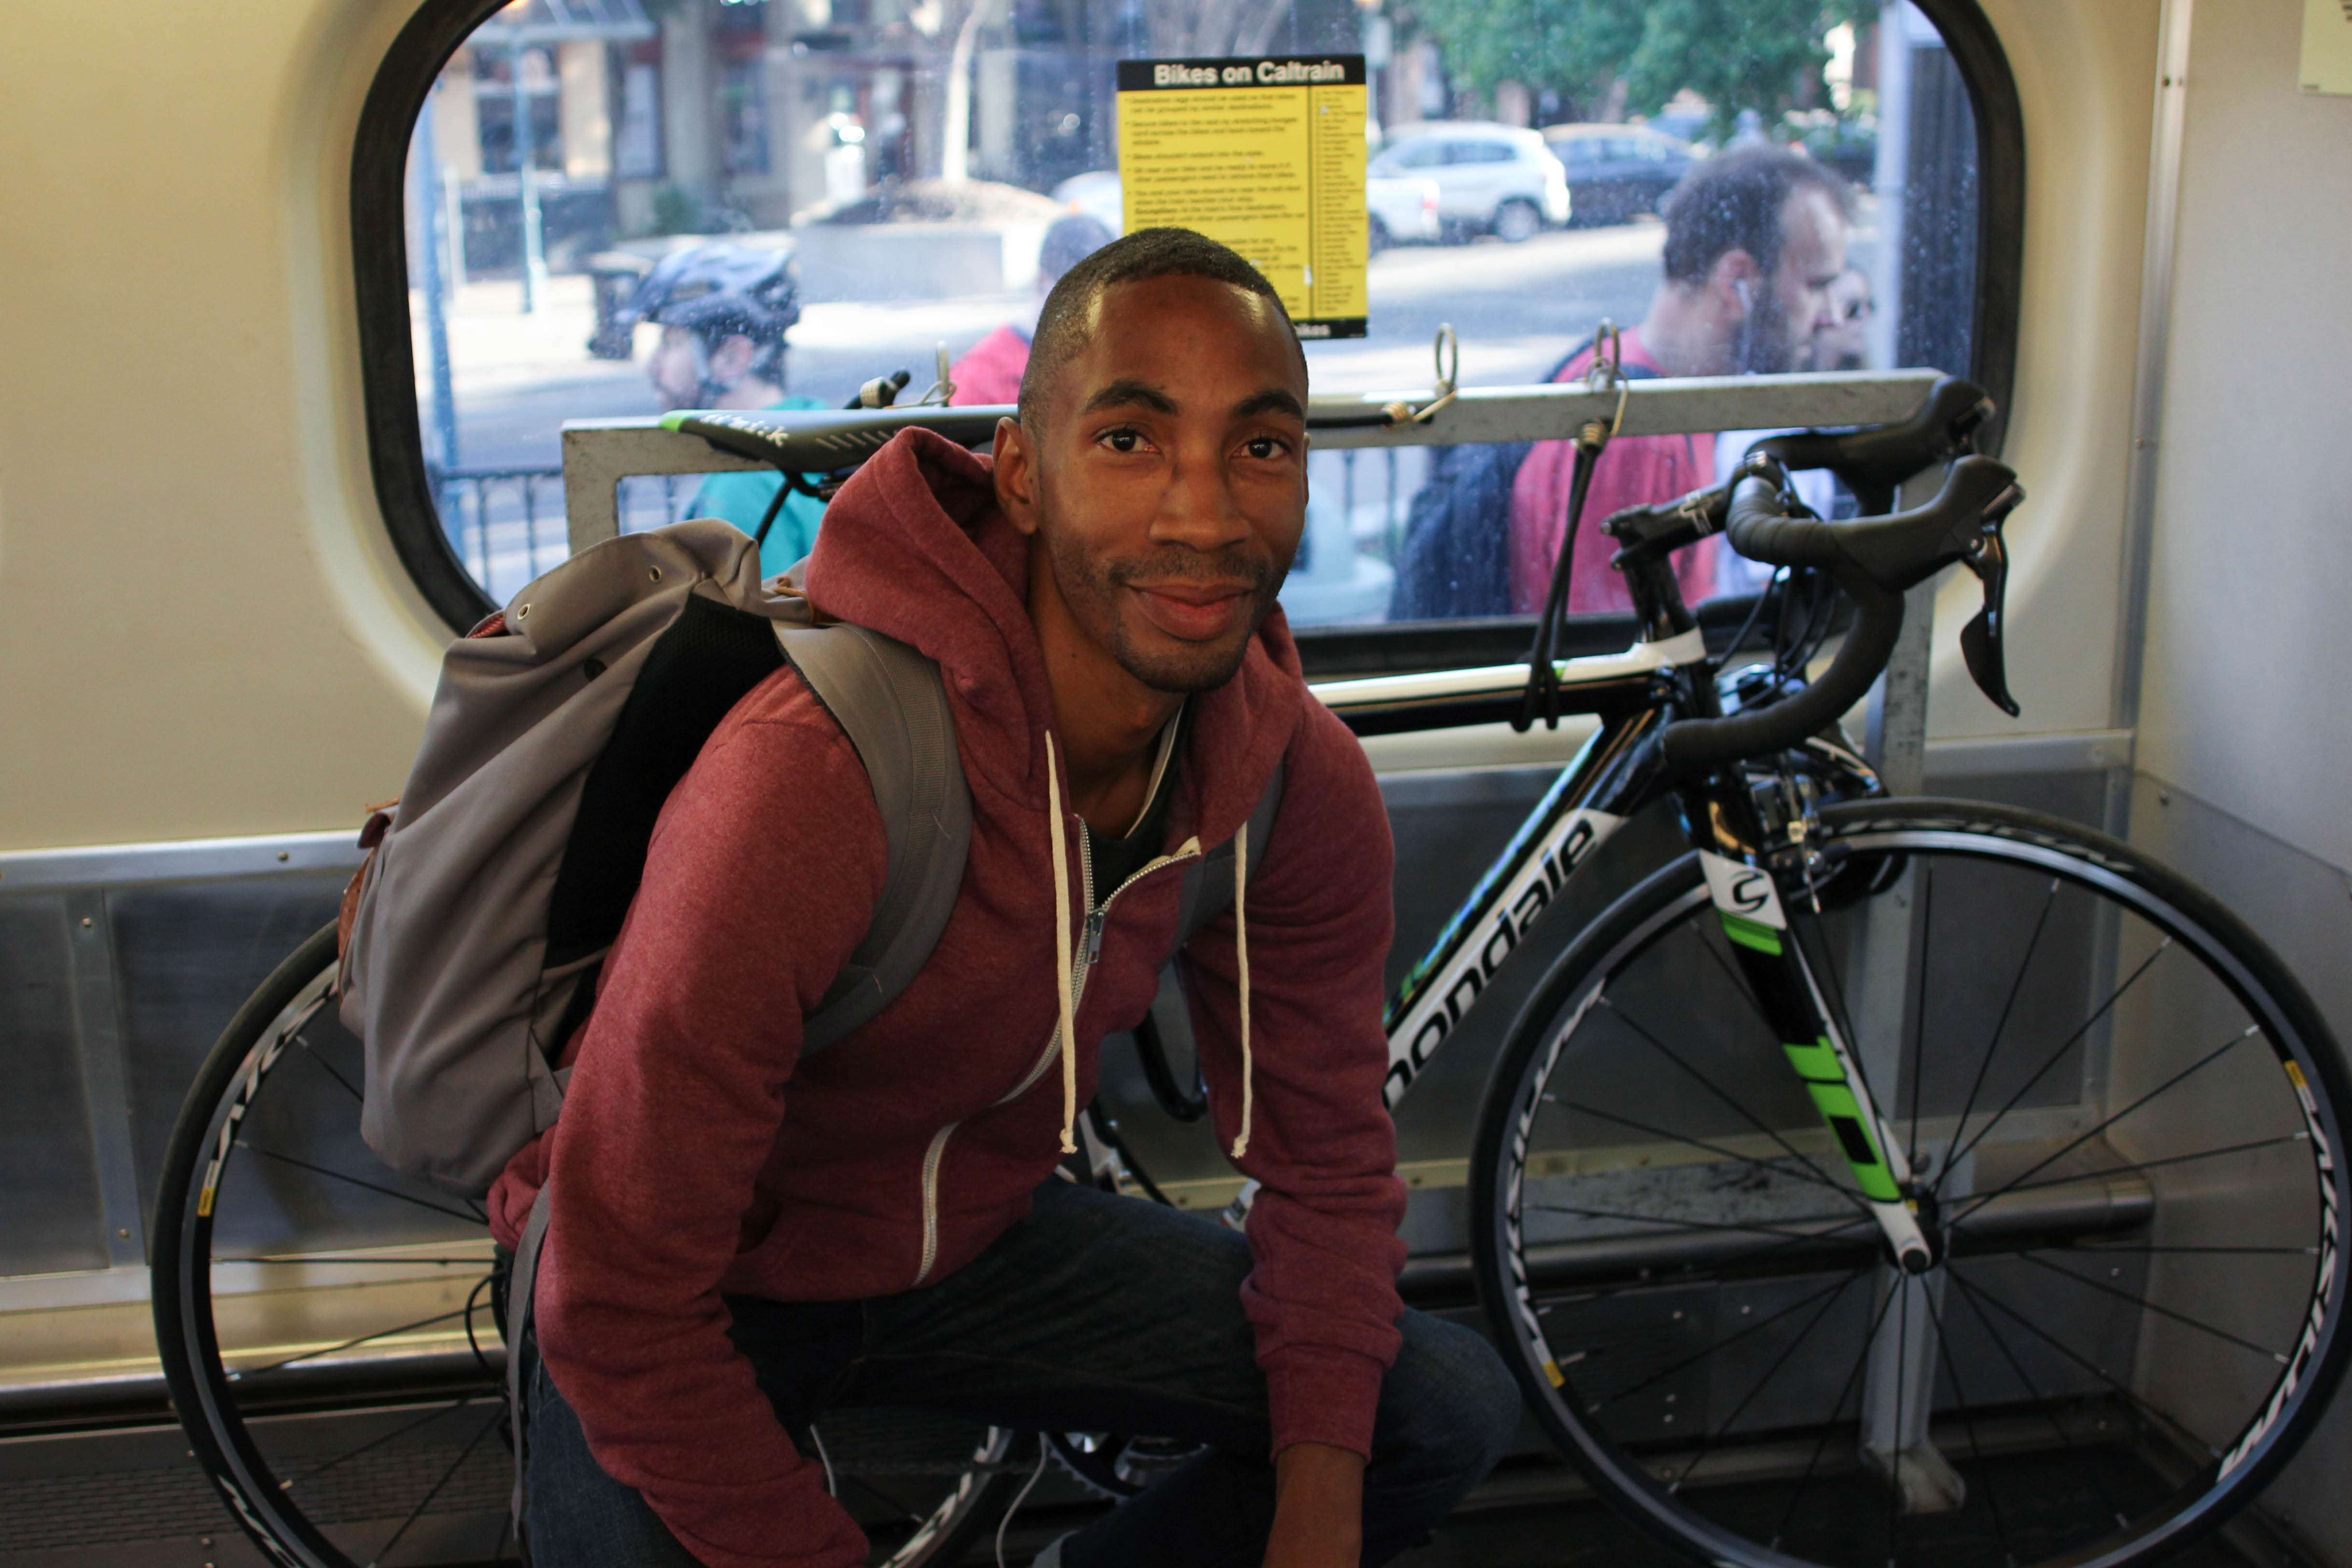 """Alan Nolley is riding Caltrain from Santa Clara to San Francisco on the morning of Sept. 29. Alan used to drive his car to Walnut Creek every morning. After changing jobs, he now commutes by train and bike. """"It's a more efficient, cleaner and greener way to work,"""" Alan says. (Charlotte Kosche/Peninsula Press)"""